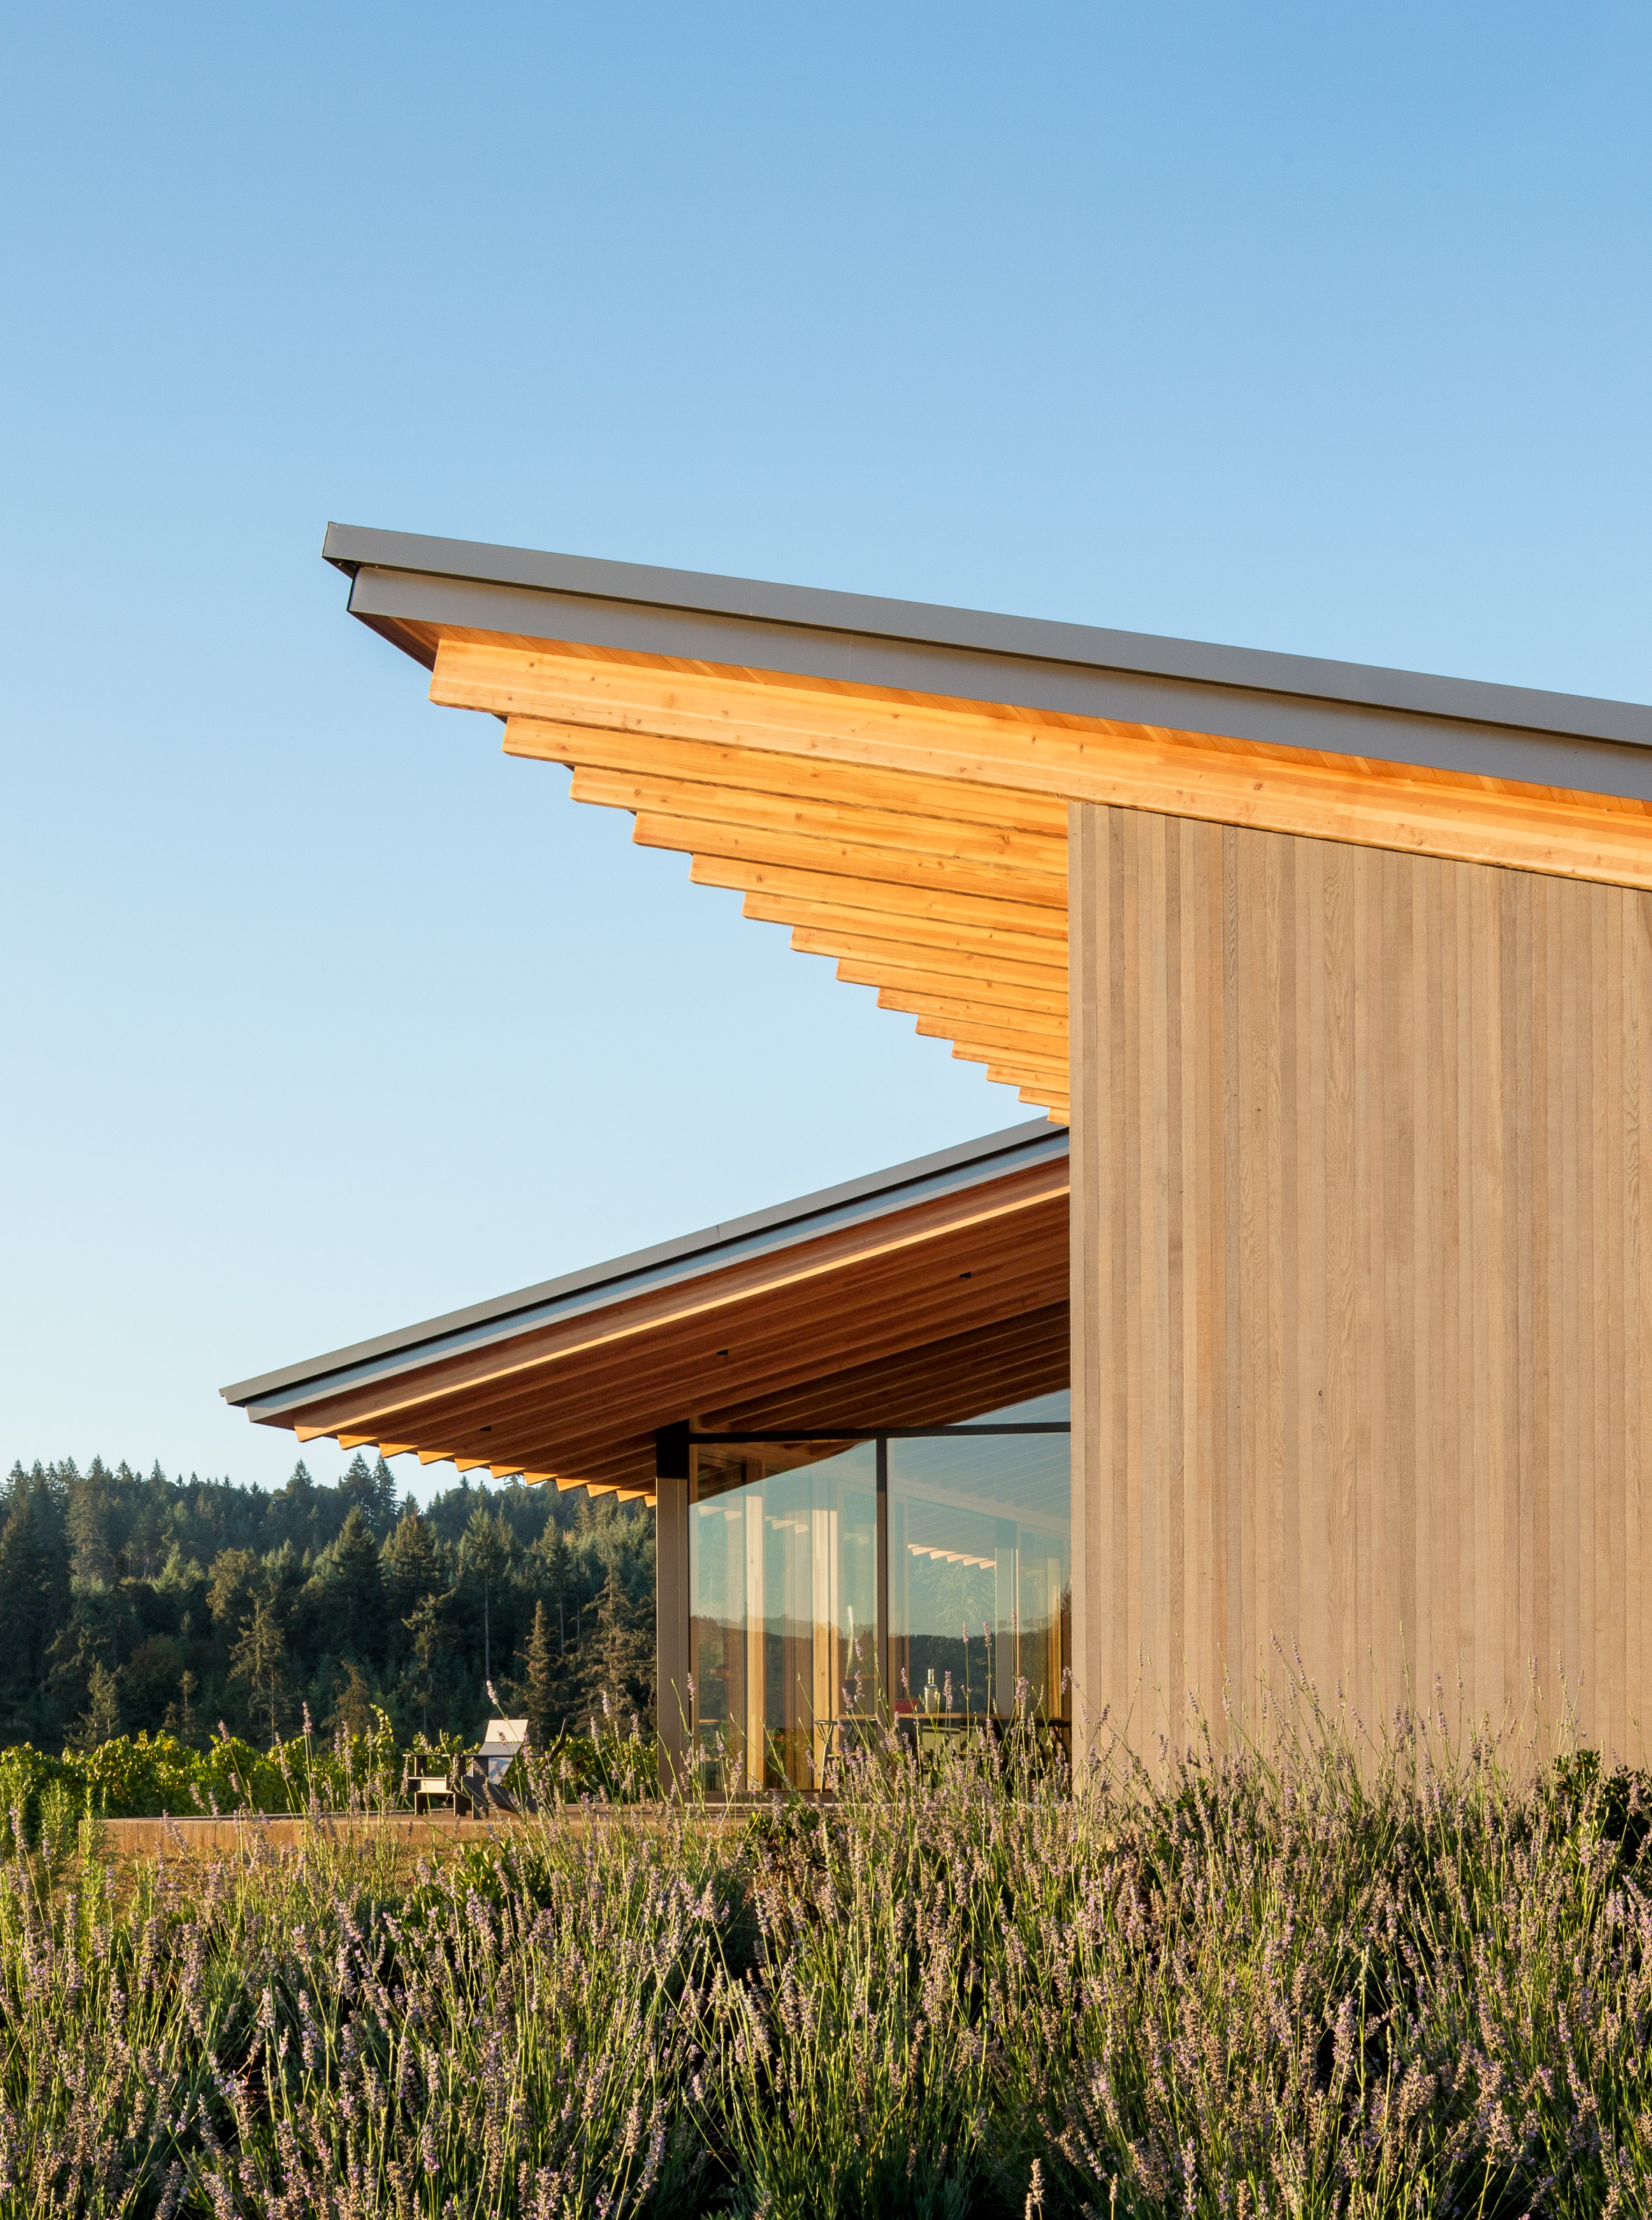 Lever Architecture designs Stunning Wine Tasting Room in Oregon lever architecture Lever Architecture designs Stunning Wine Tasting Room in Oregon Lever Architecture designs Stunning Wine Tasting Room in Oregon 3